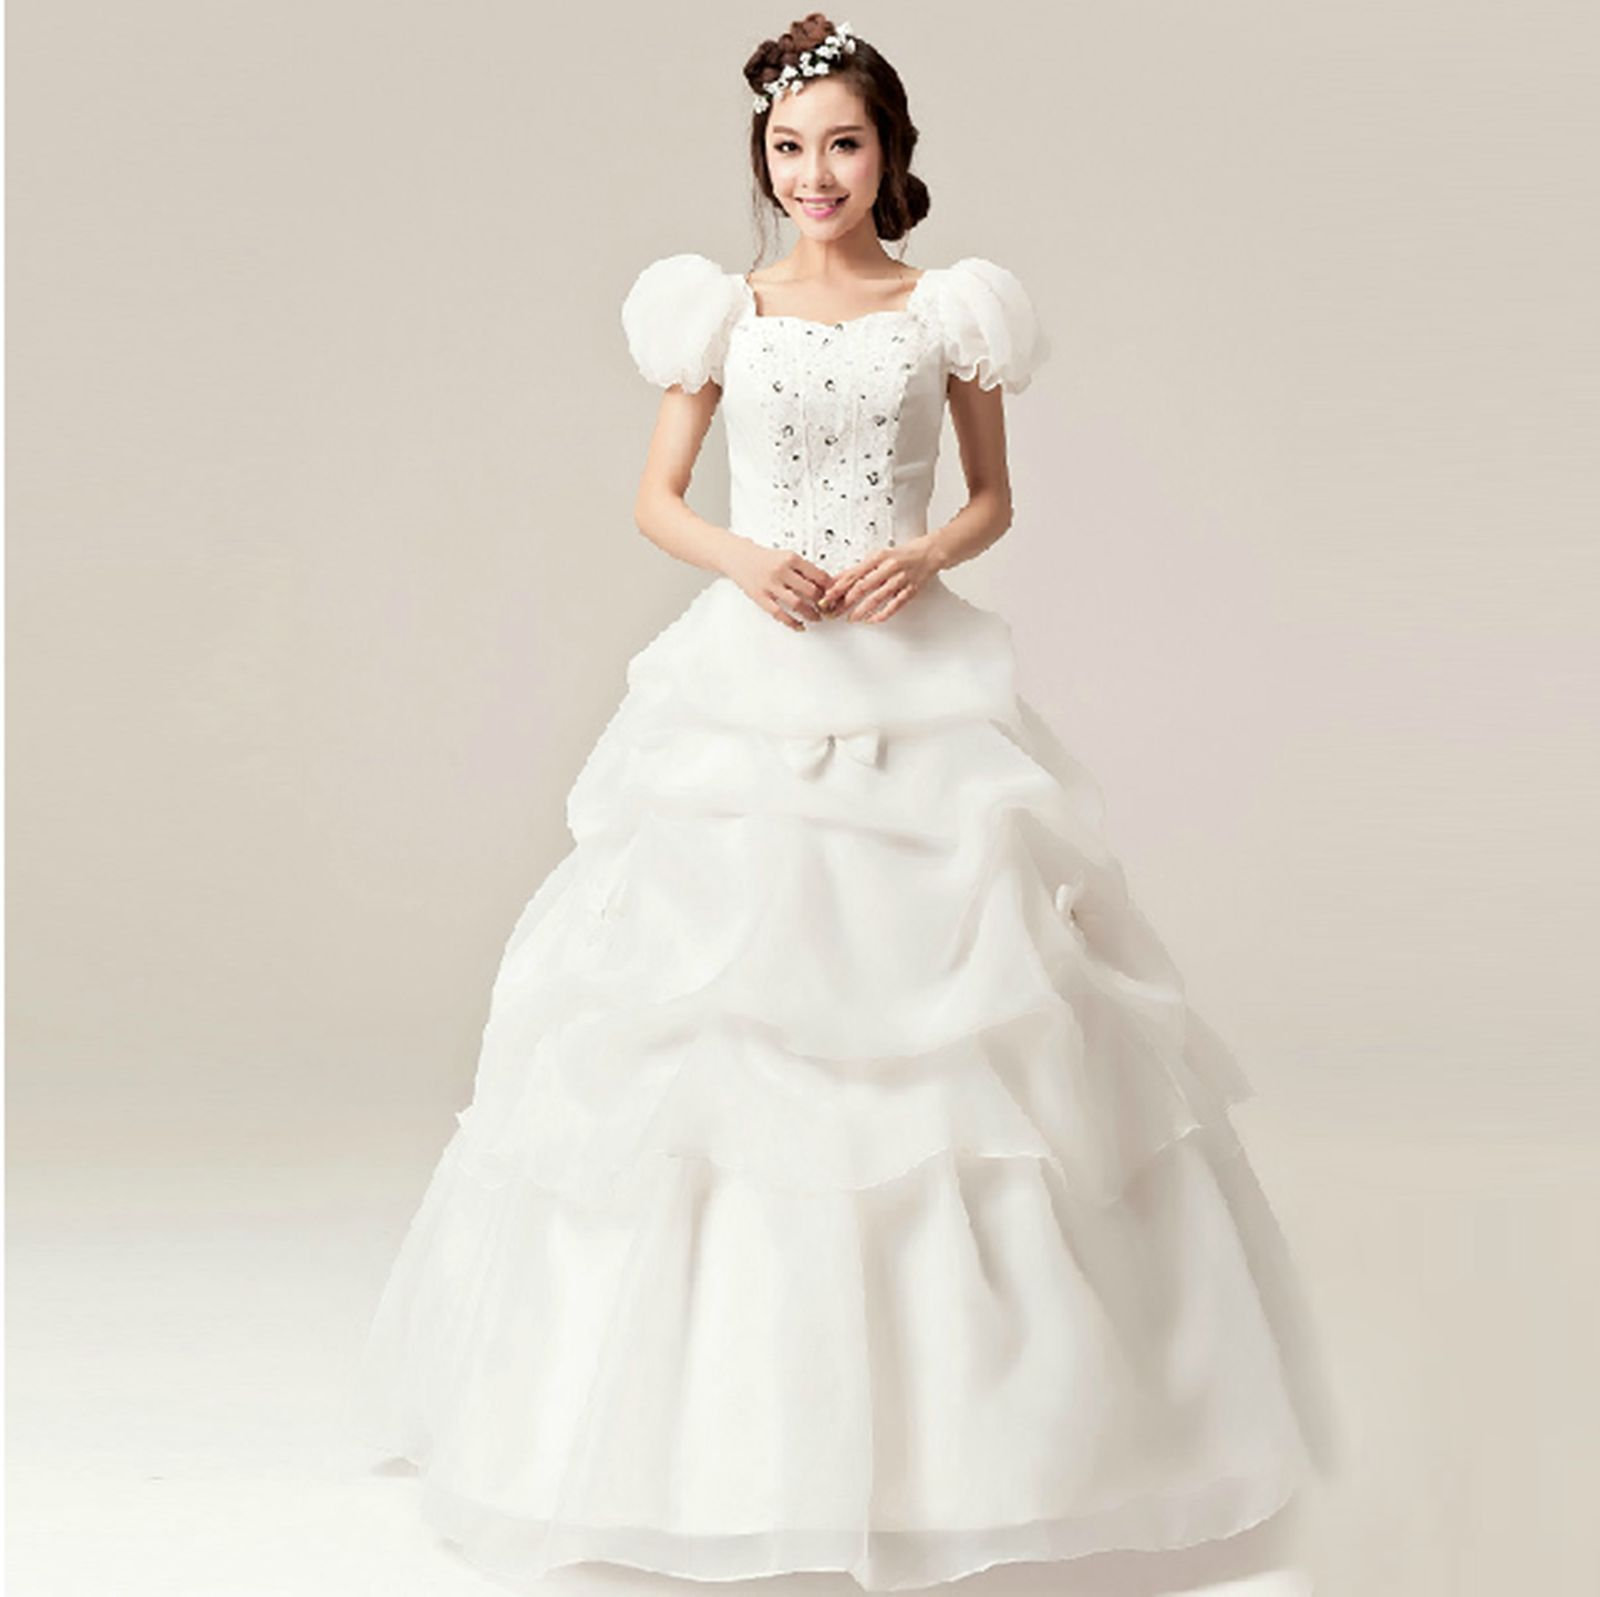 Used Wedding Dresses for Sale On Ebay - Plus Size Dresses for ...